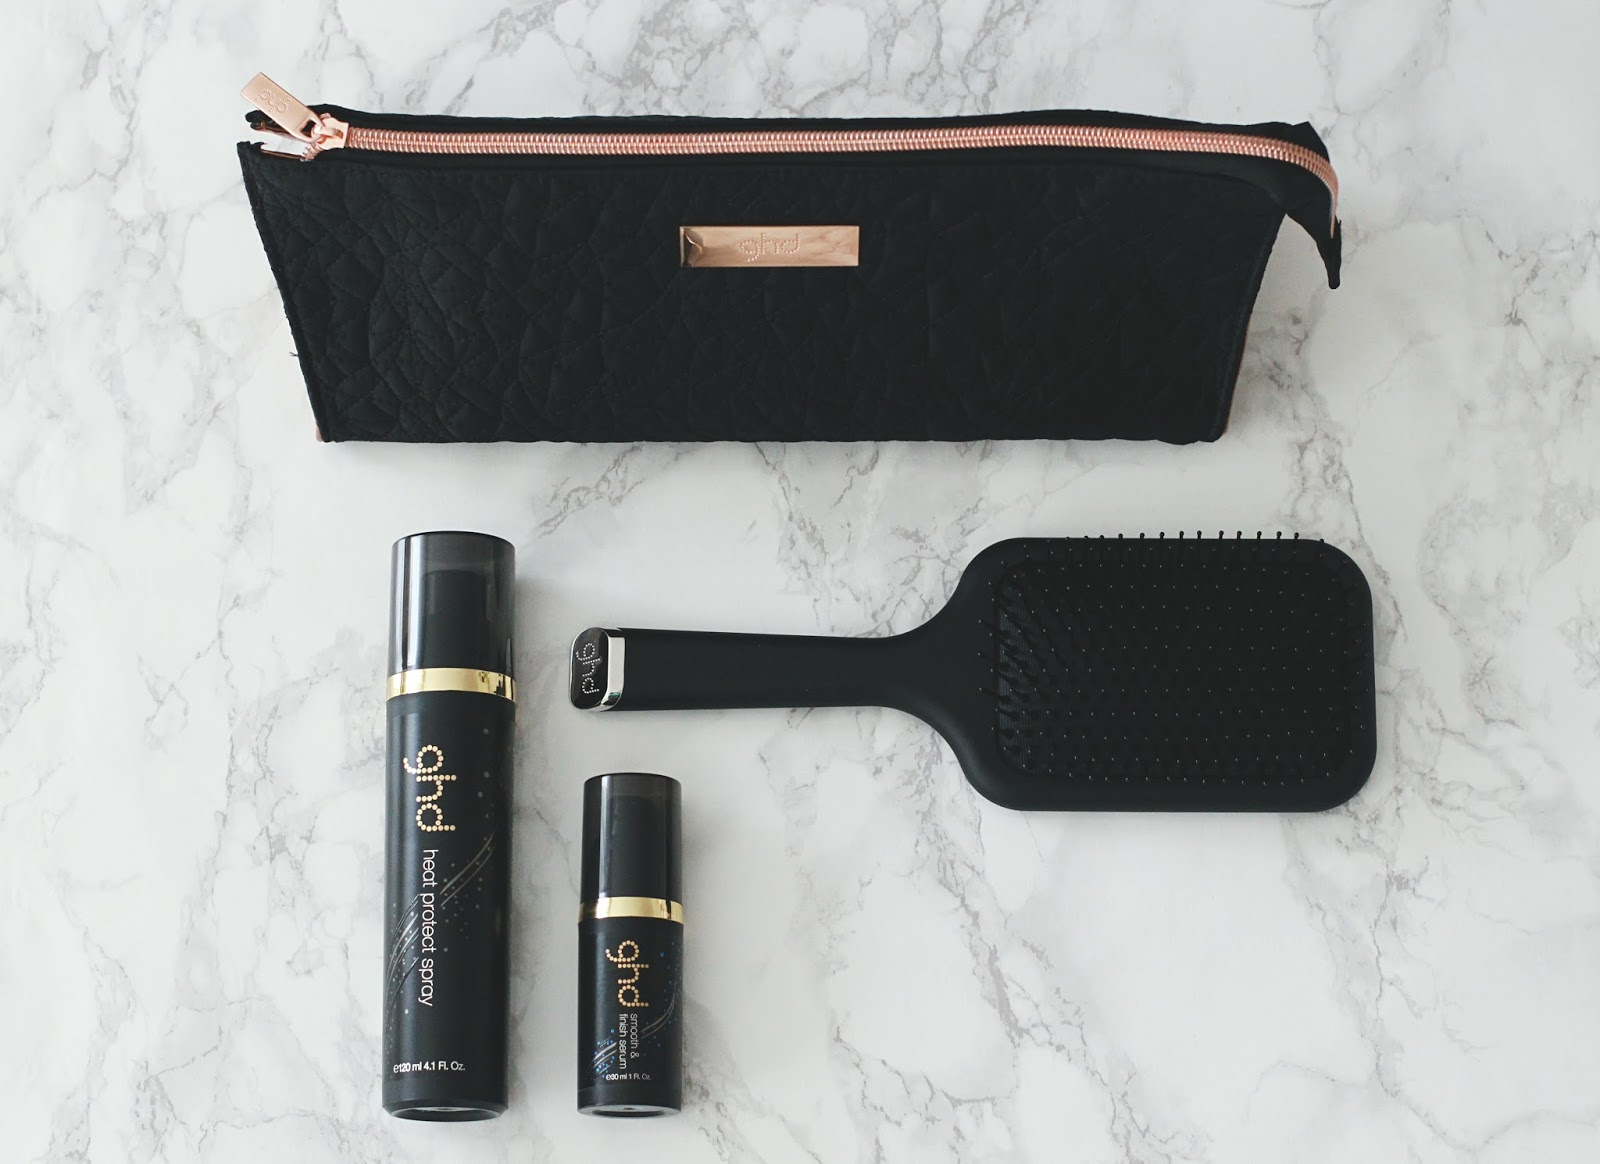 Ultimate Style ghd Copper Luxe